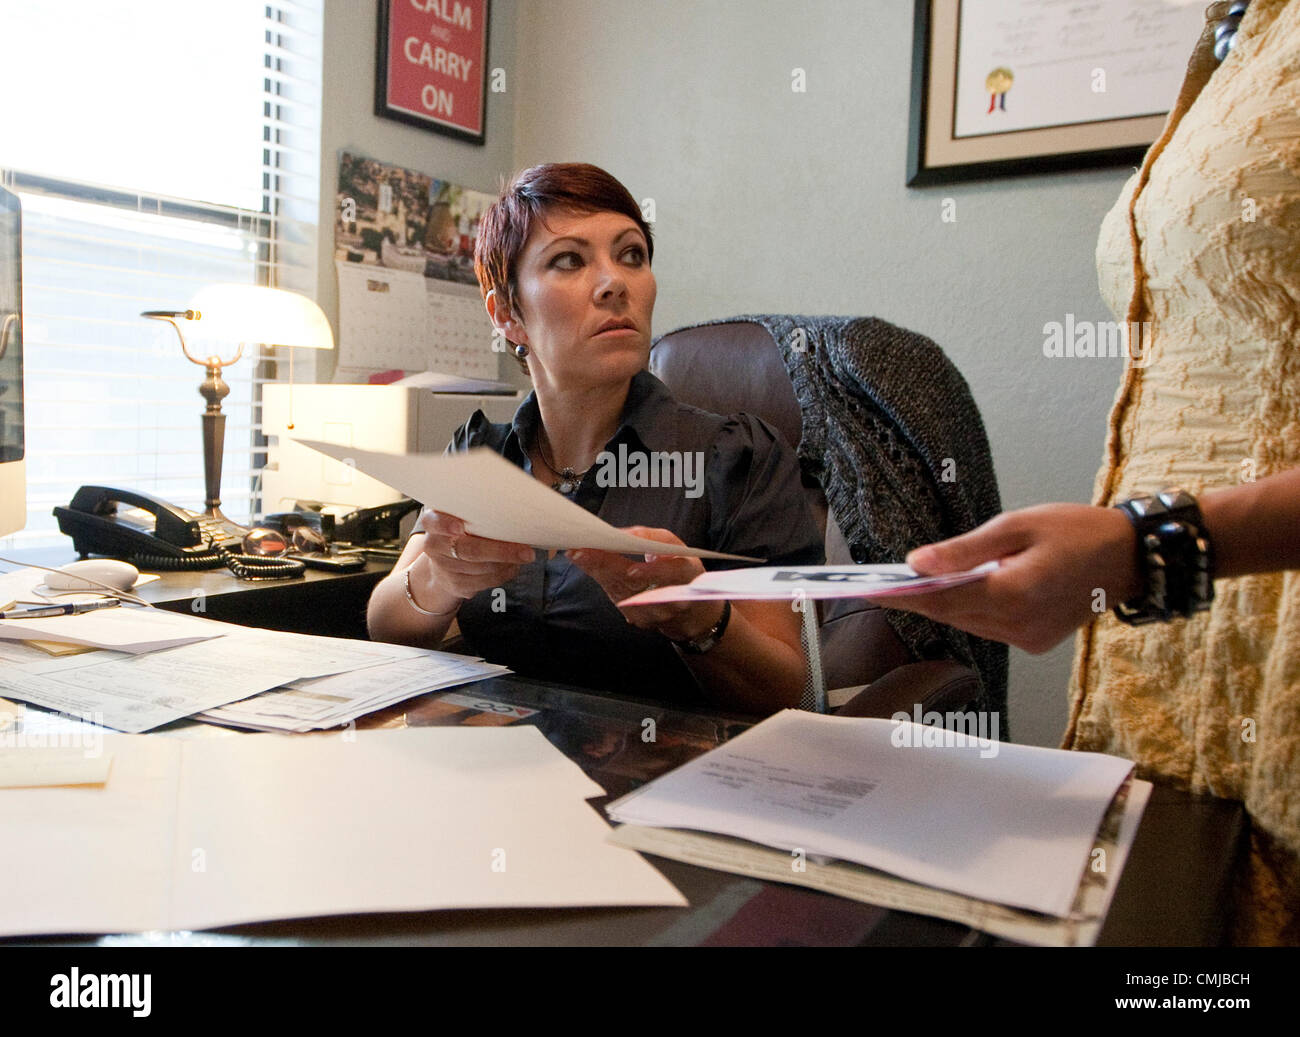 Immigration attorney reviews paperwork regarding Deferred Action for Childhood Arrivals process for client. - Stock Image